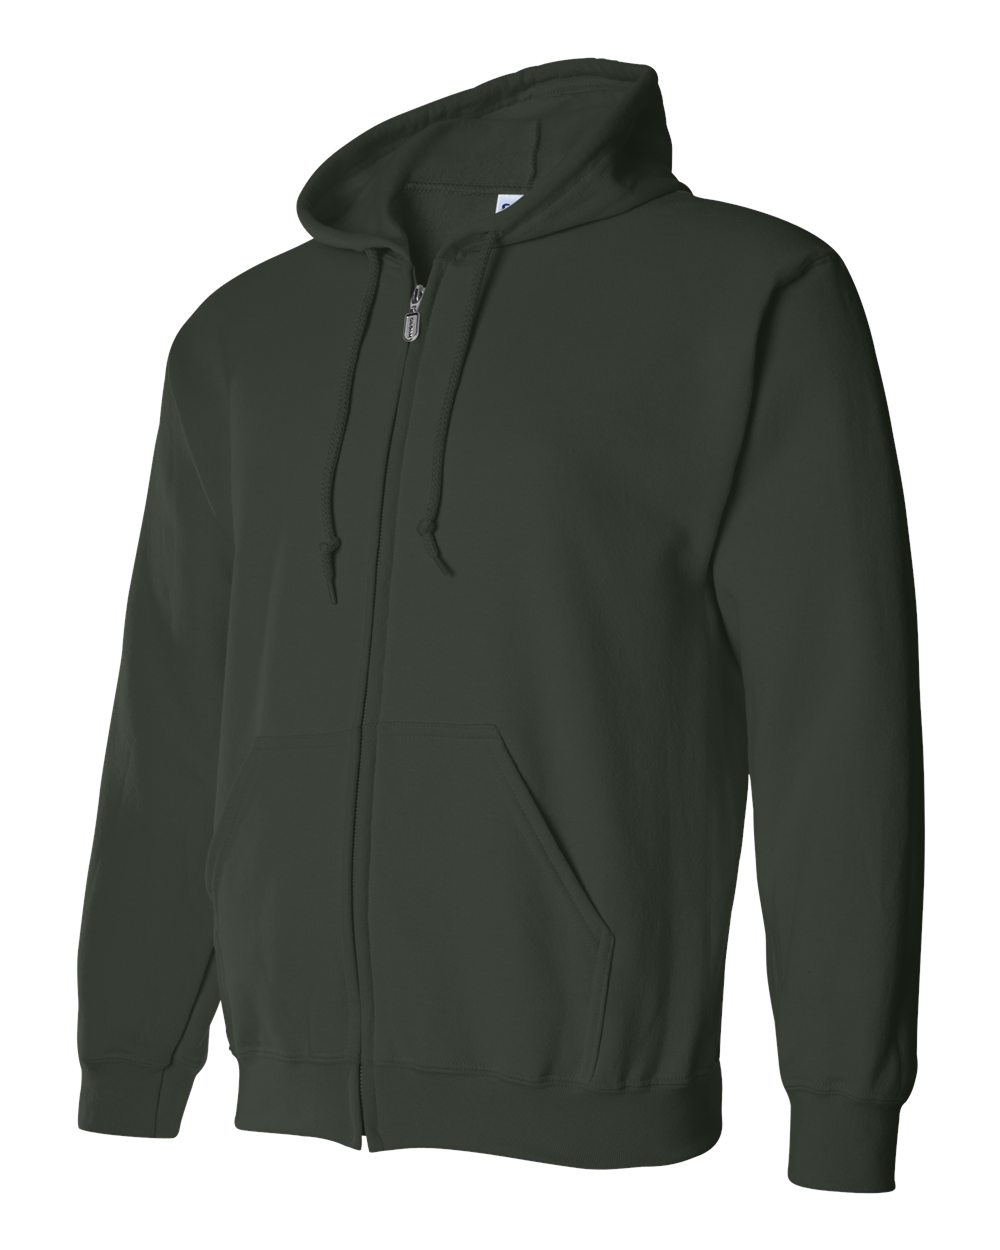 Gildan Heavy Blend Full Zip Hoodie GIL18600 Forest Green